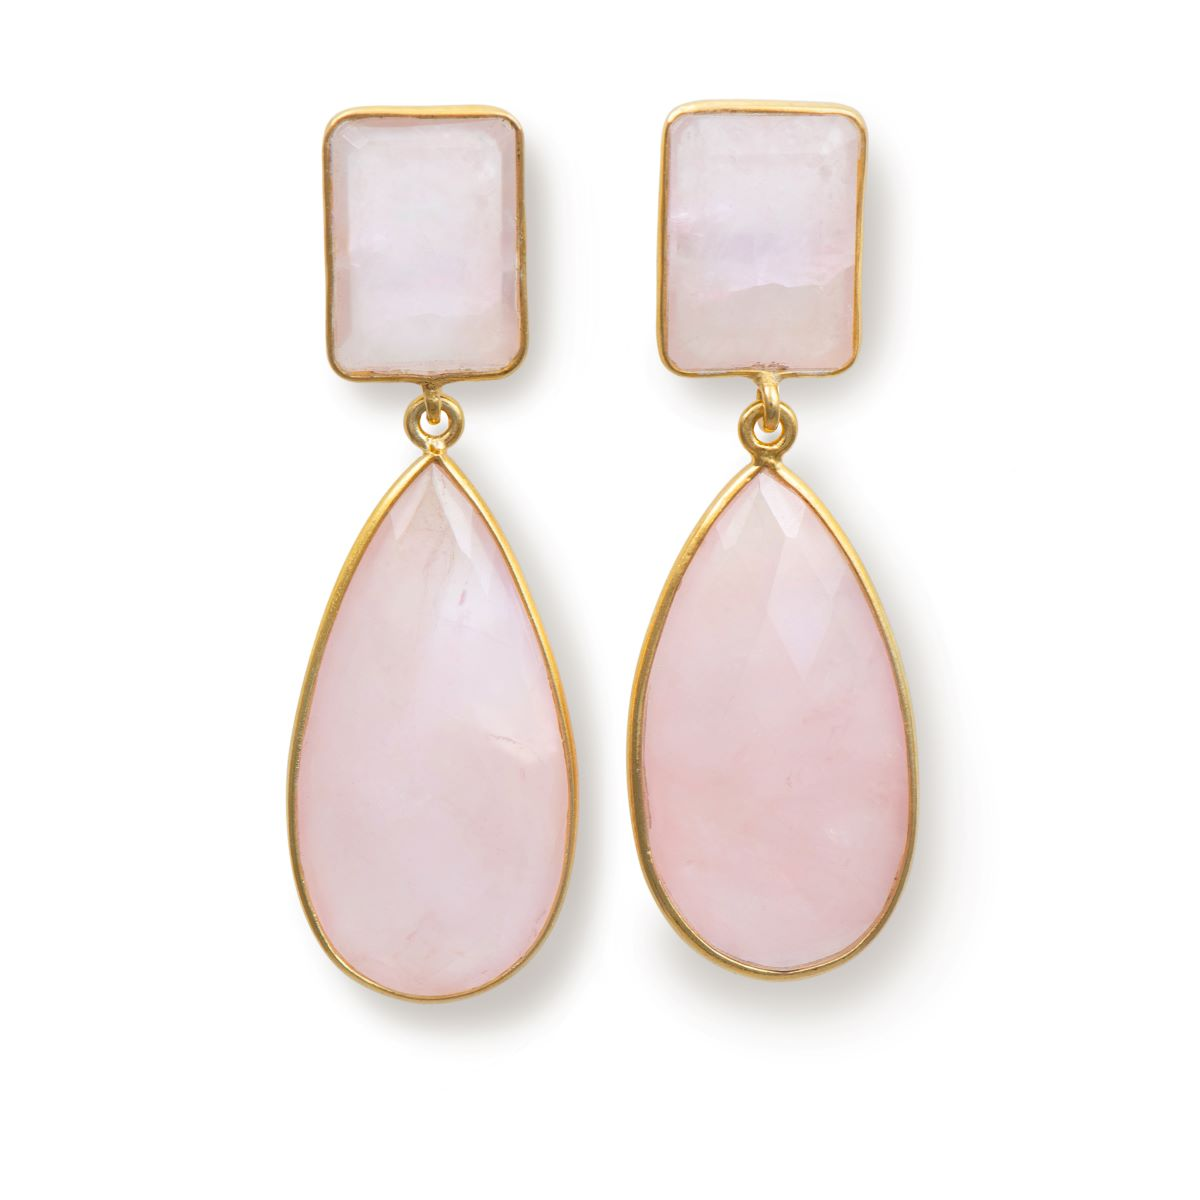 Long Earrings with Rectangle Stone and Long Pear Shaped Stone Drop - Rose Quartz